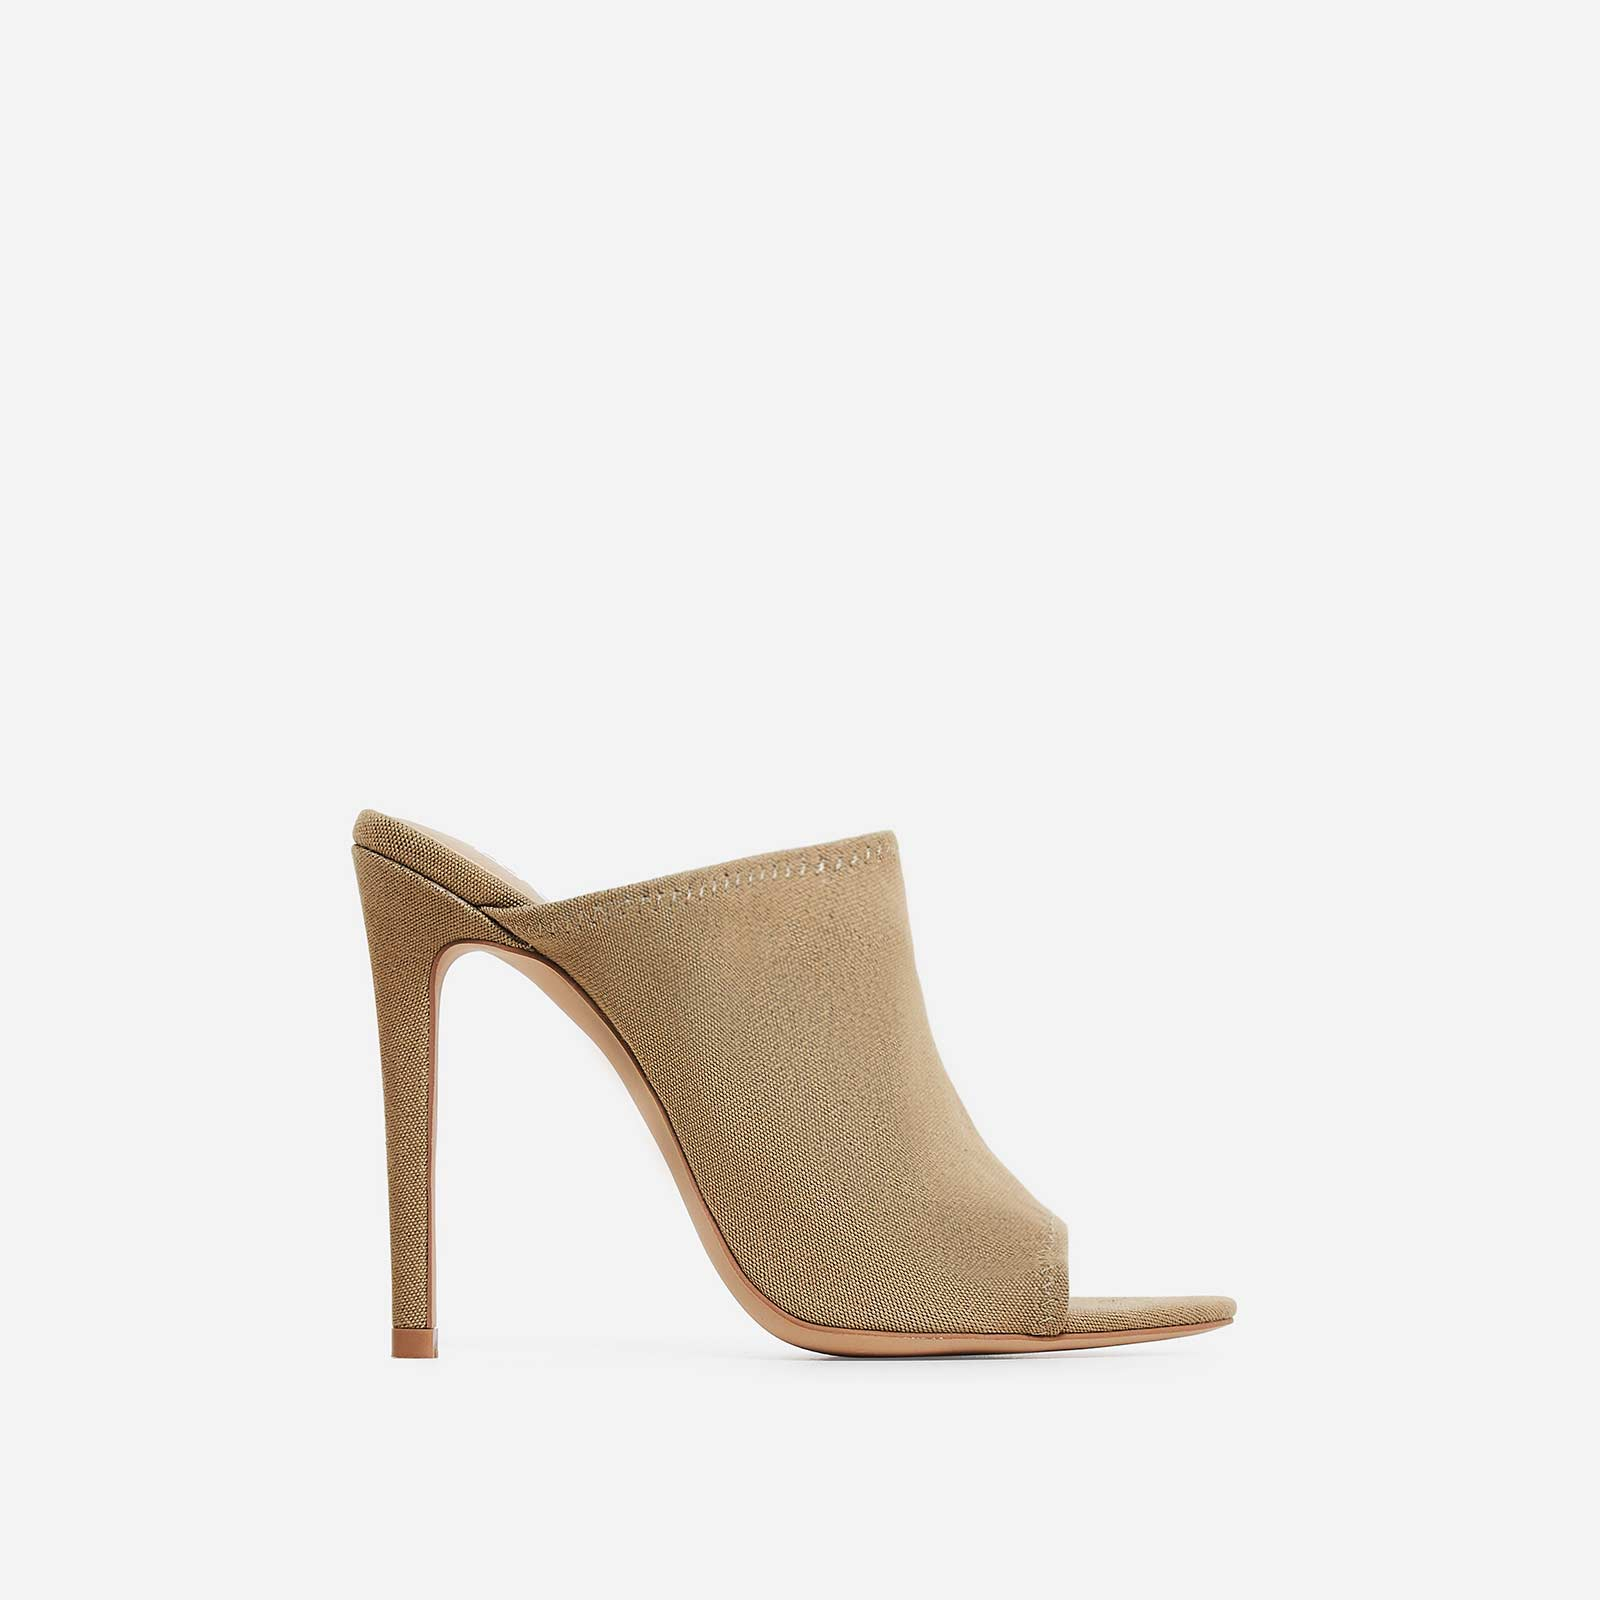 Jade Peep Toe Mule In Khaki Canvas